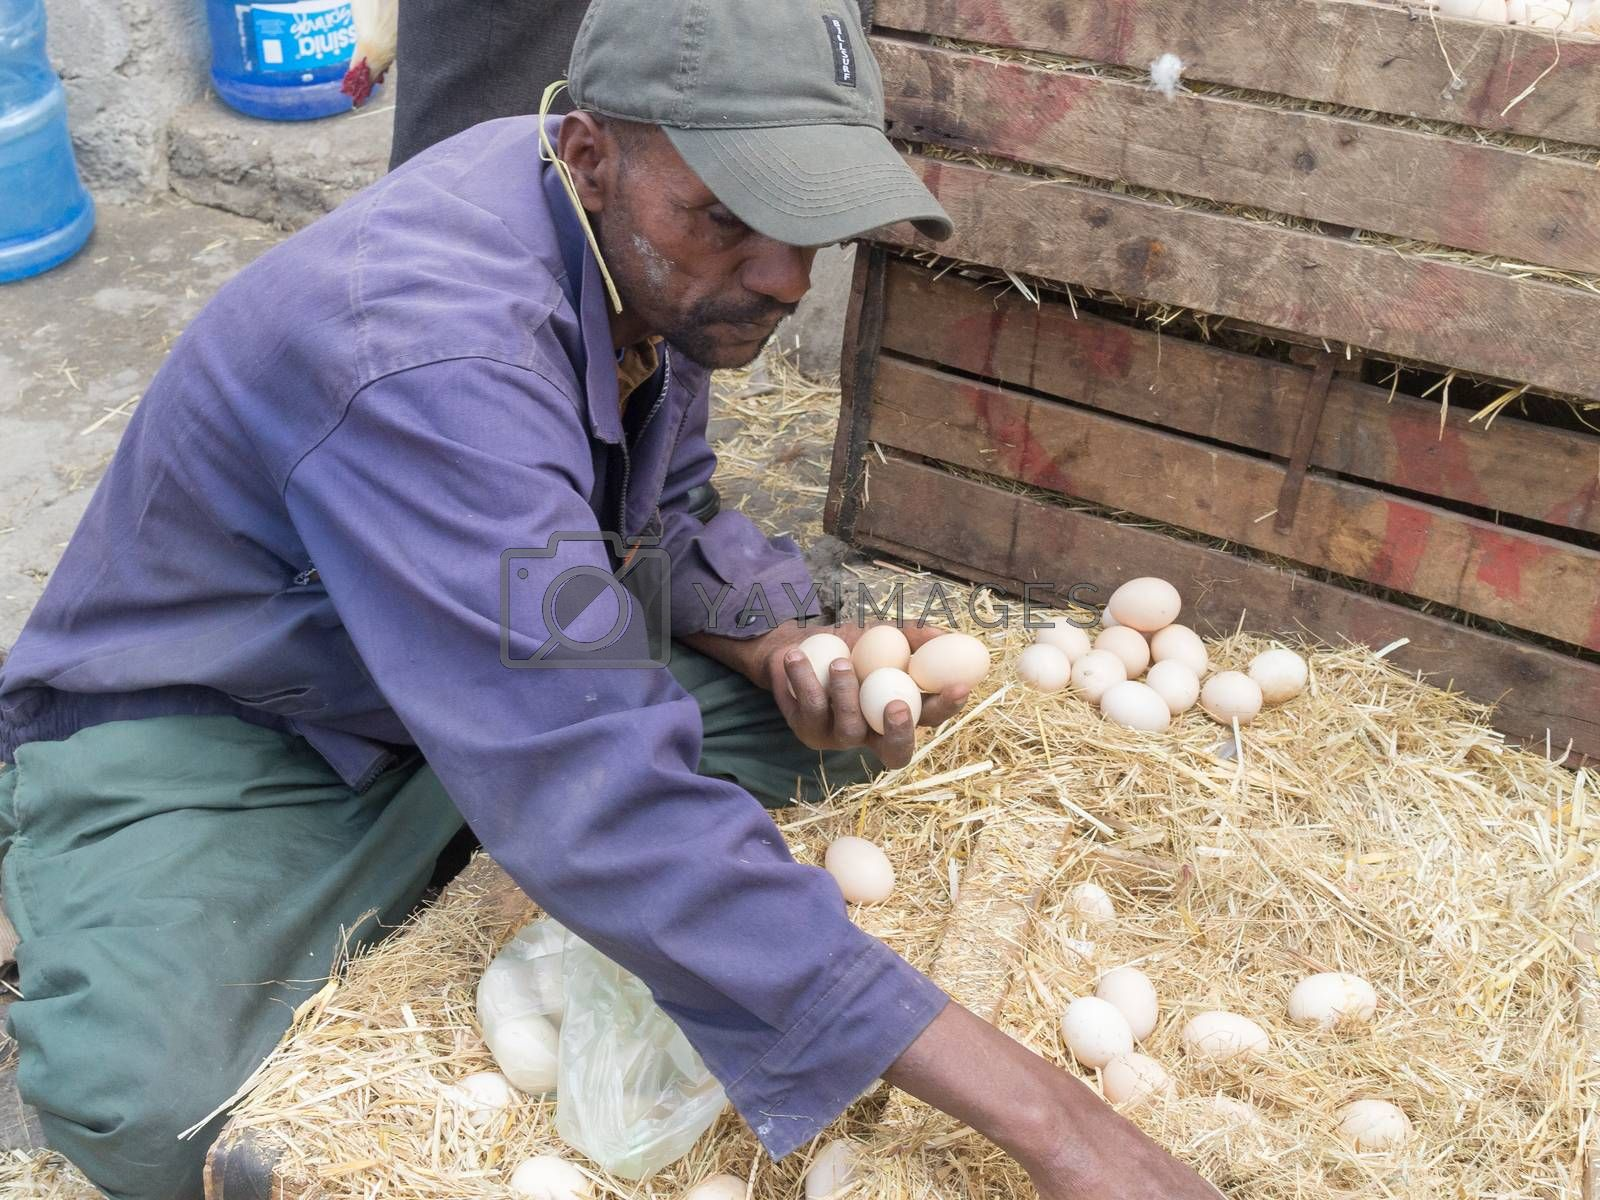 Addis Ababa: April 11: A man carefully inspects fresh farm eggs available for sale at a local market during Easter eve on April 11, 2015 in Addis Ababa, Ethiopia